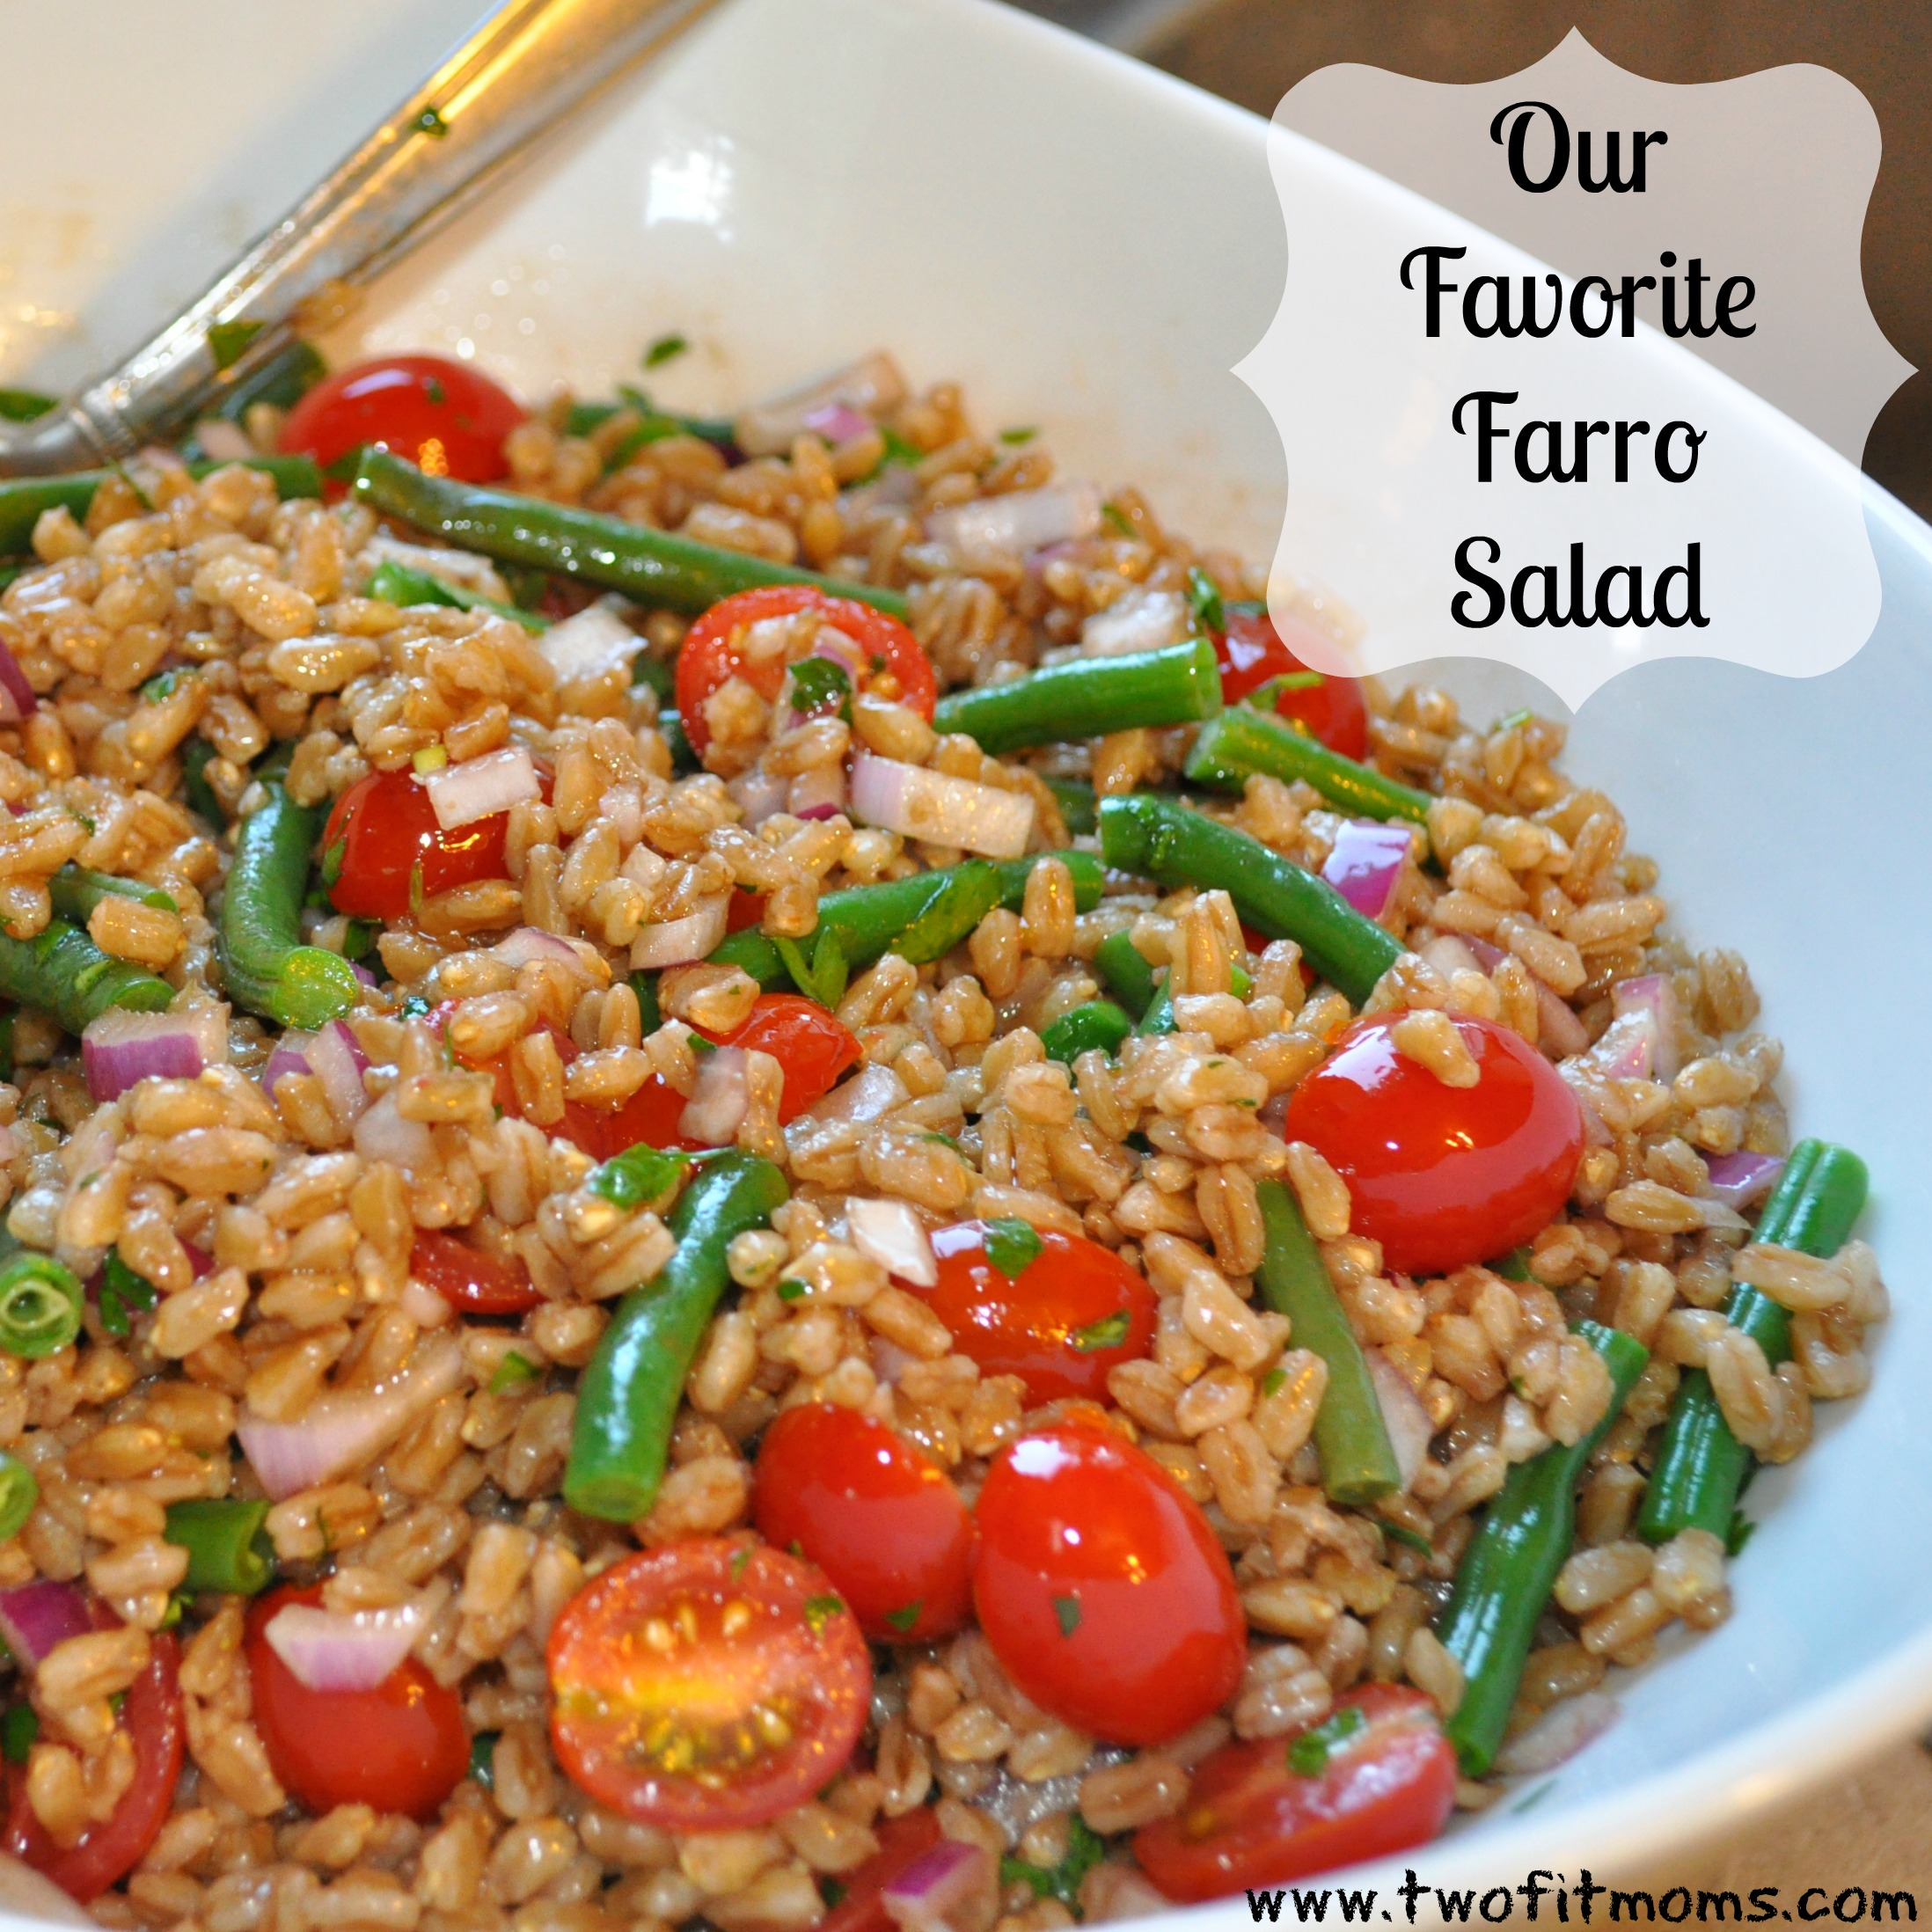 Two Fit Moms » Our Favorite Farro Salad